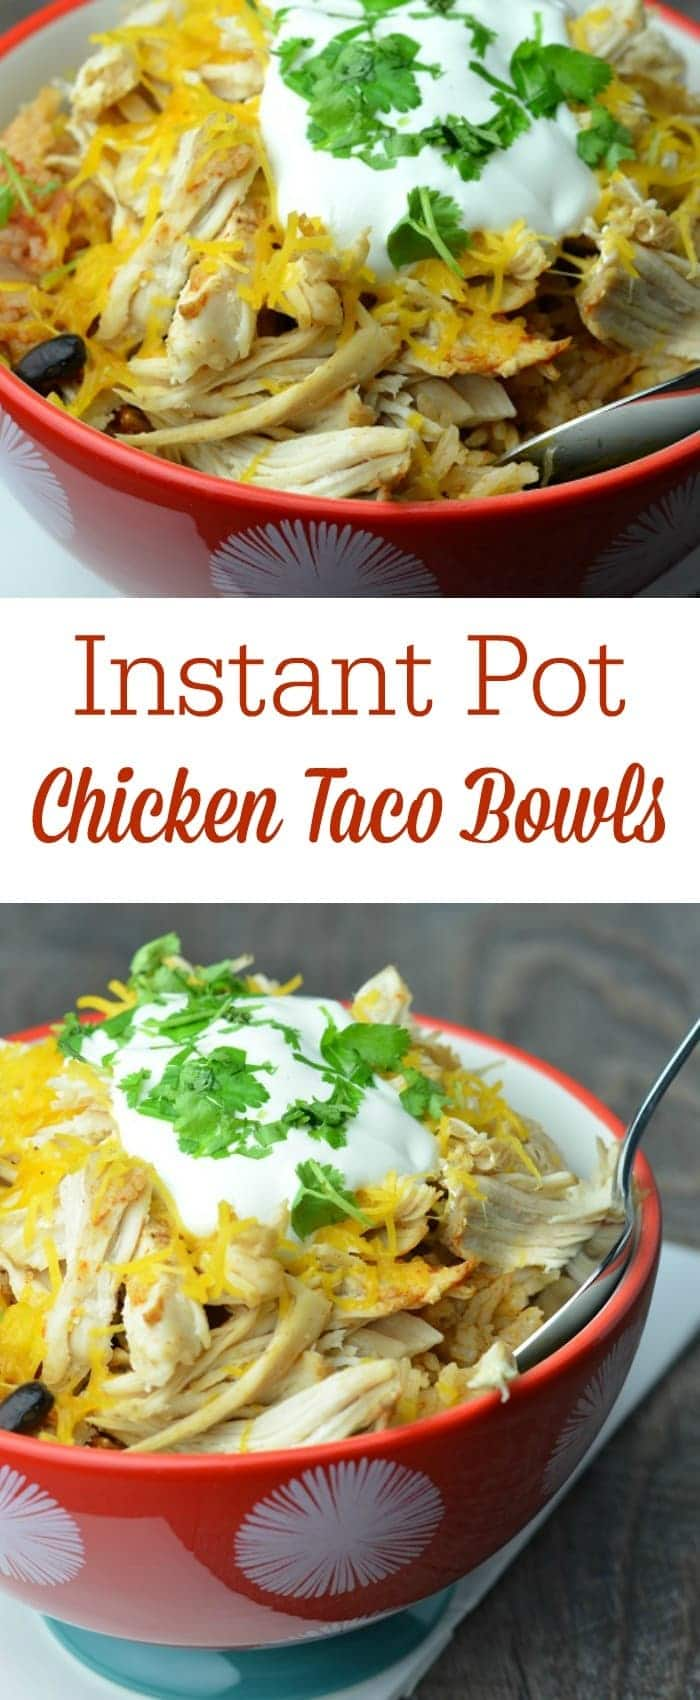 Instant pot chicken taco bowls for Chicken recipes for the instant pot